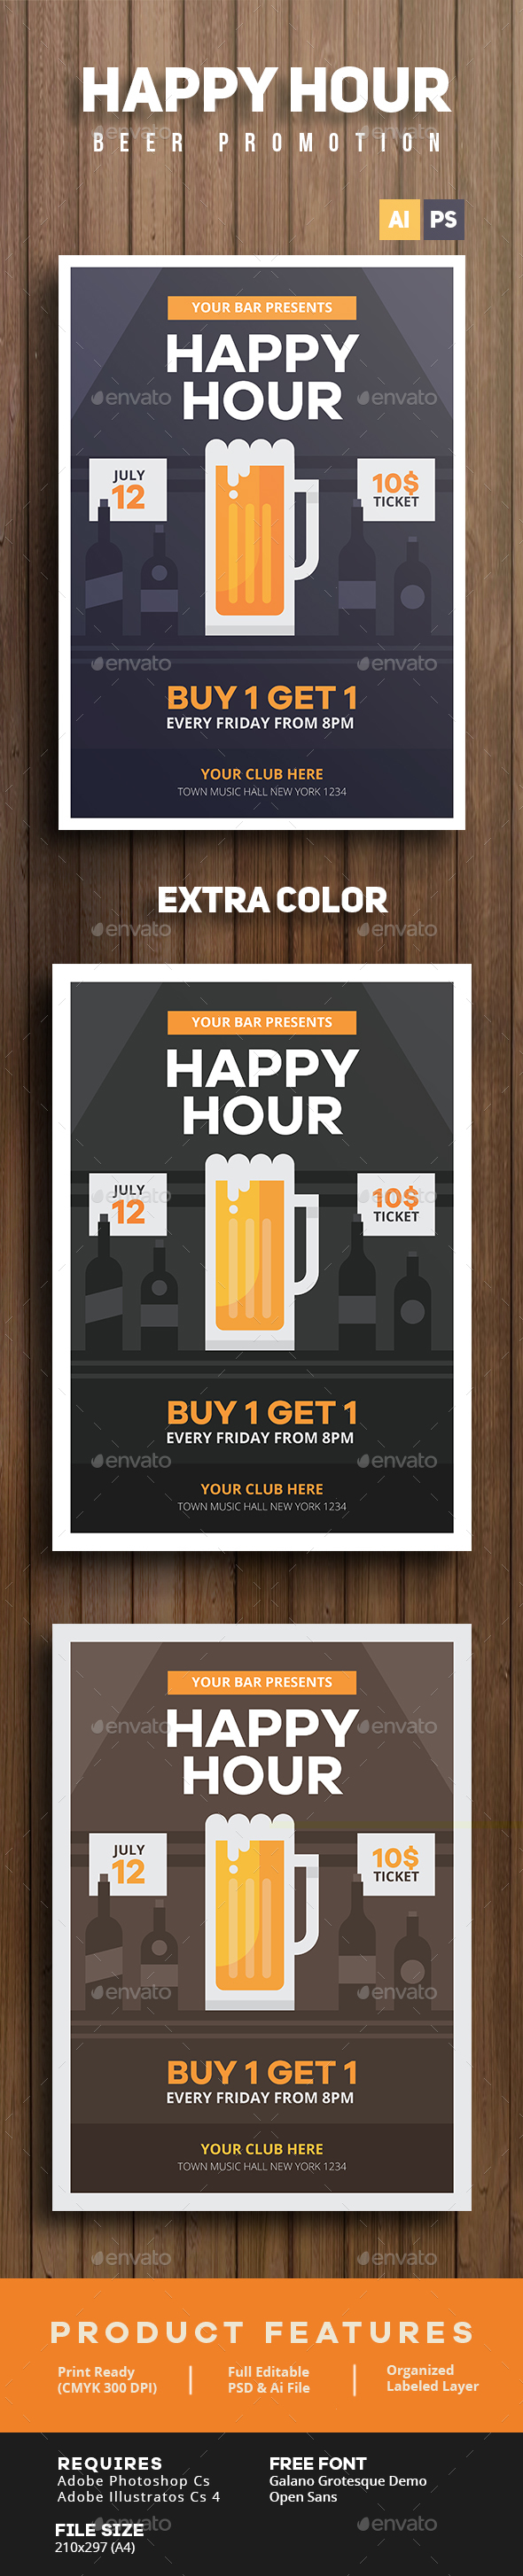 Happy Hour Beer Promotion Flyer - Clubs & Parties Events